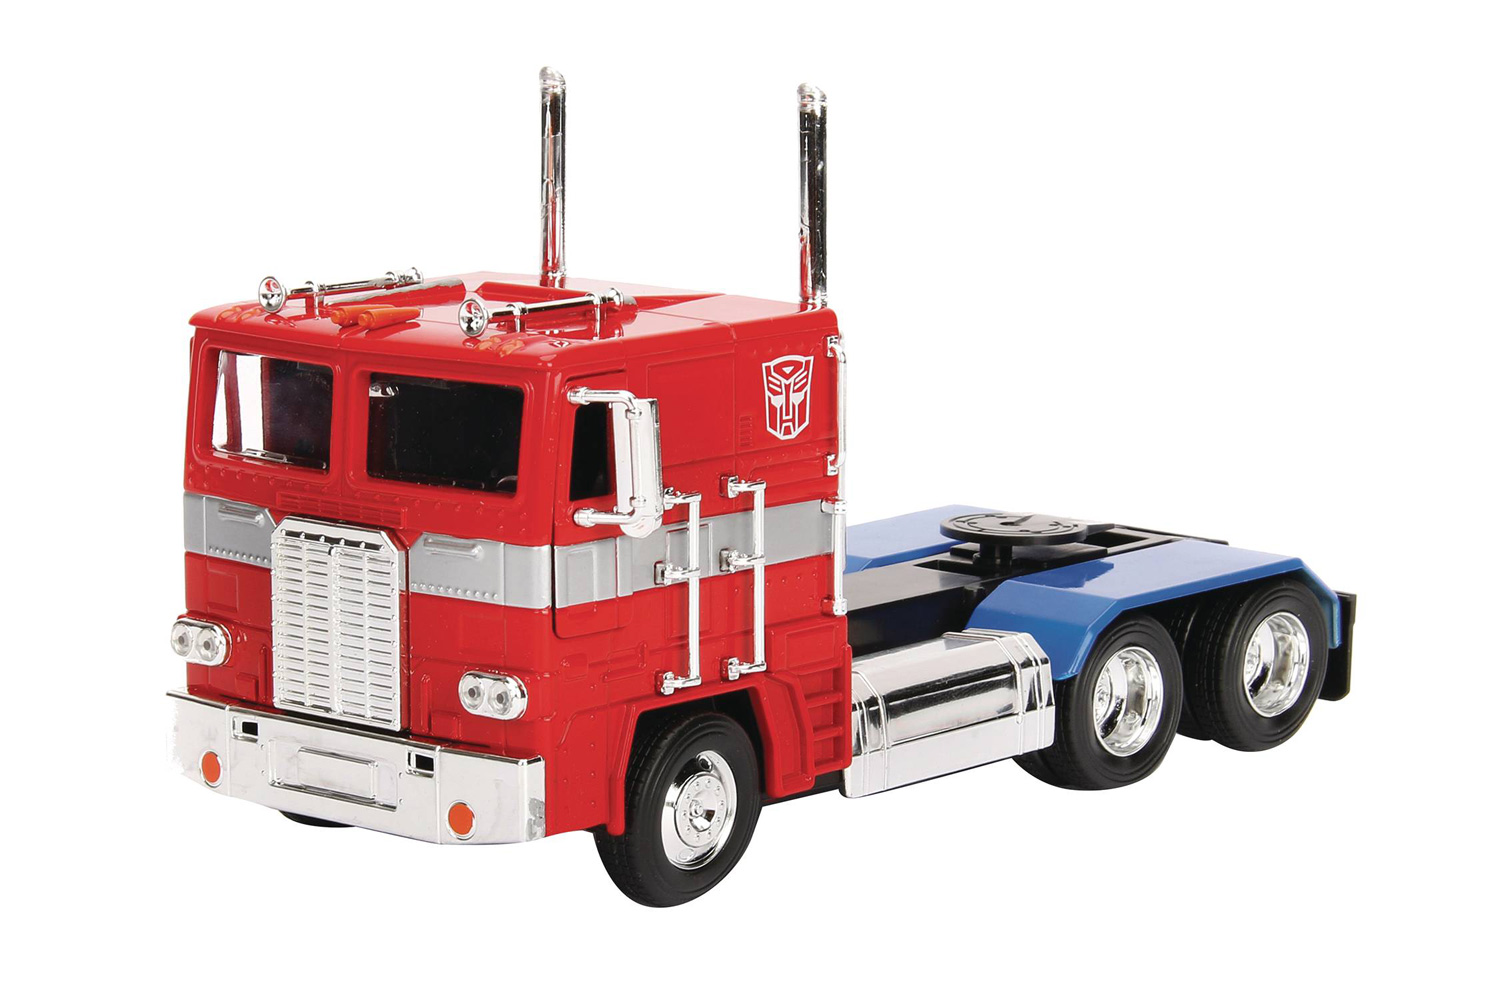 Image: Transformers G1 Optimus Prime Die-Cast Truck  (1/24 scale) - Jada Toys, Inc